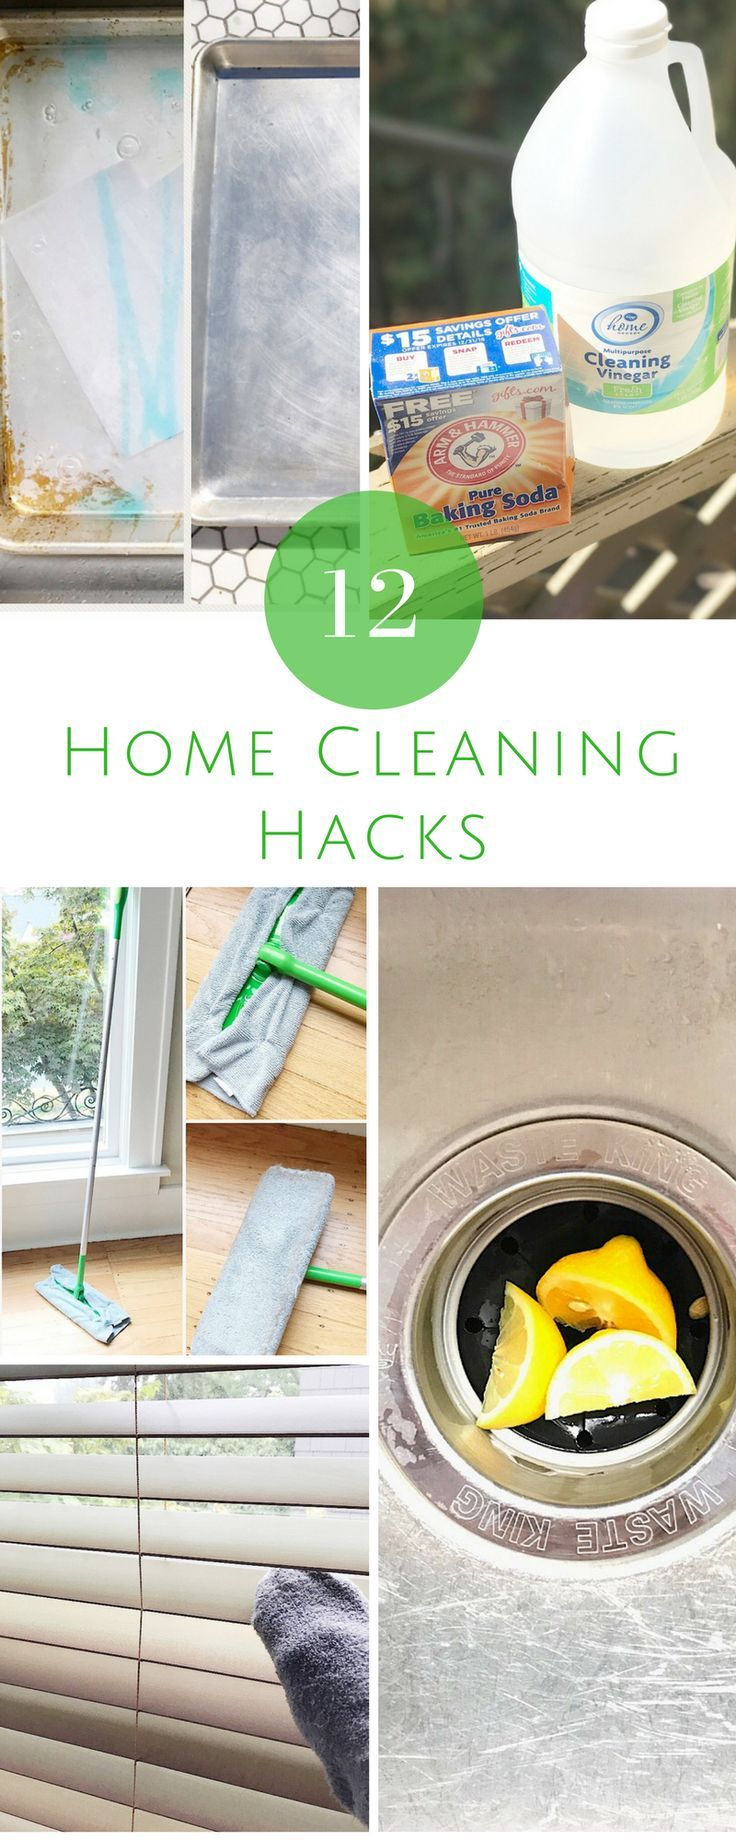 My Favorite Cleaning Hacks to keep your Home Spotless | Kool aid ...